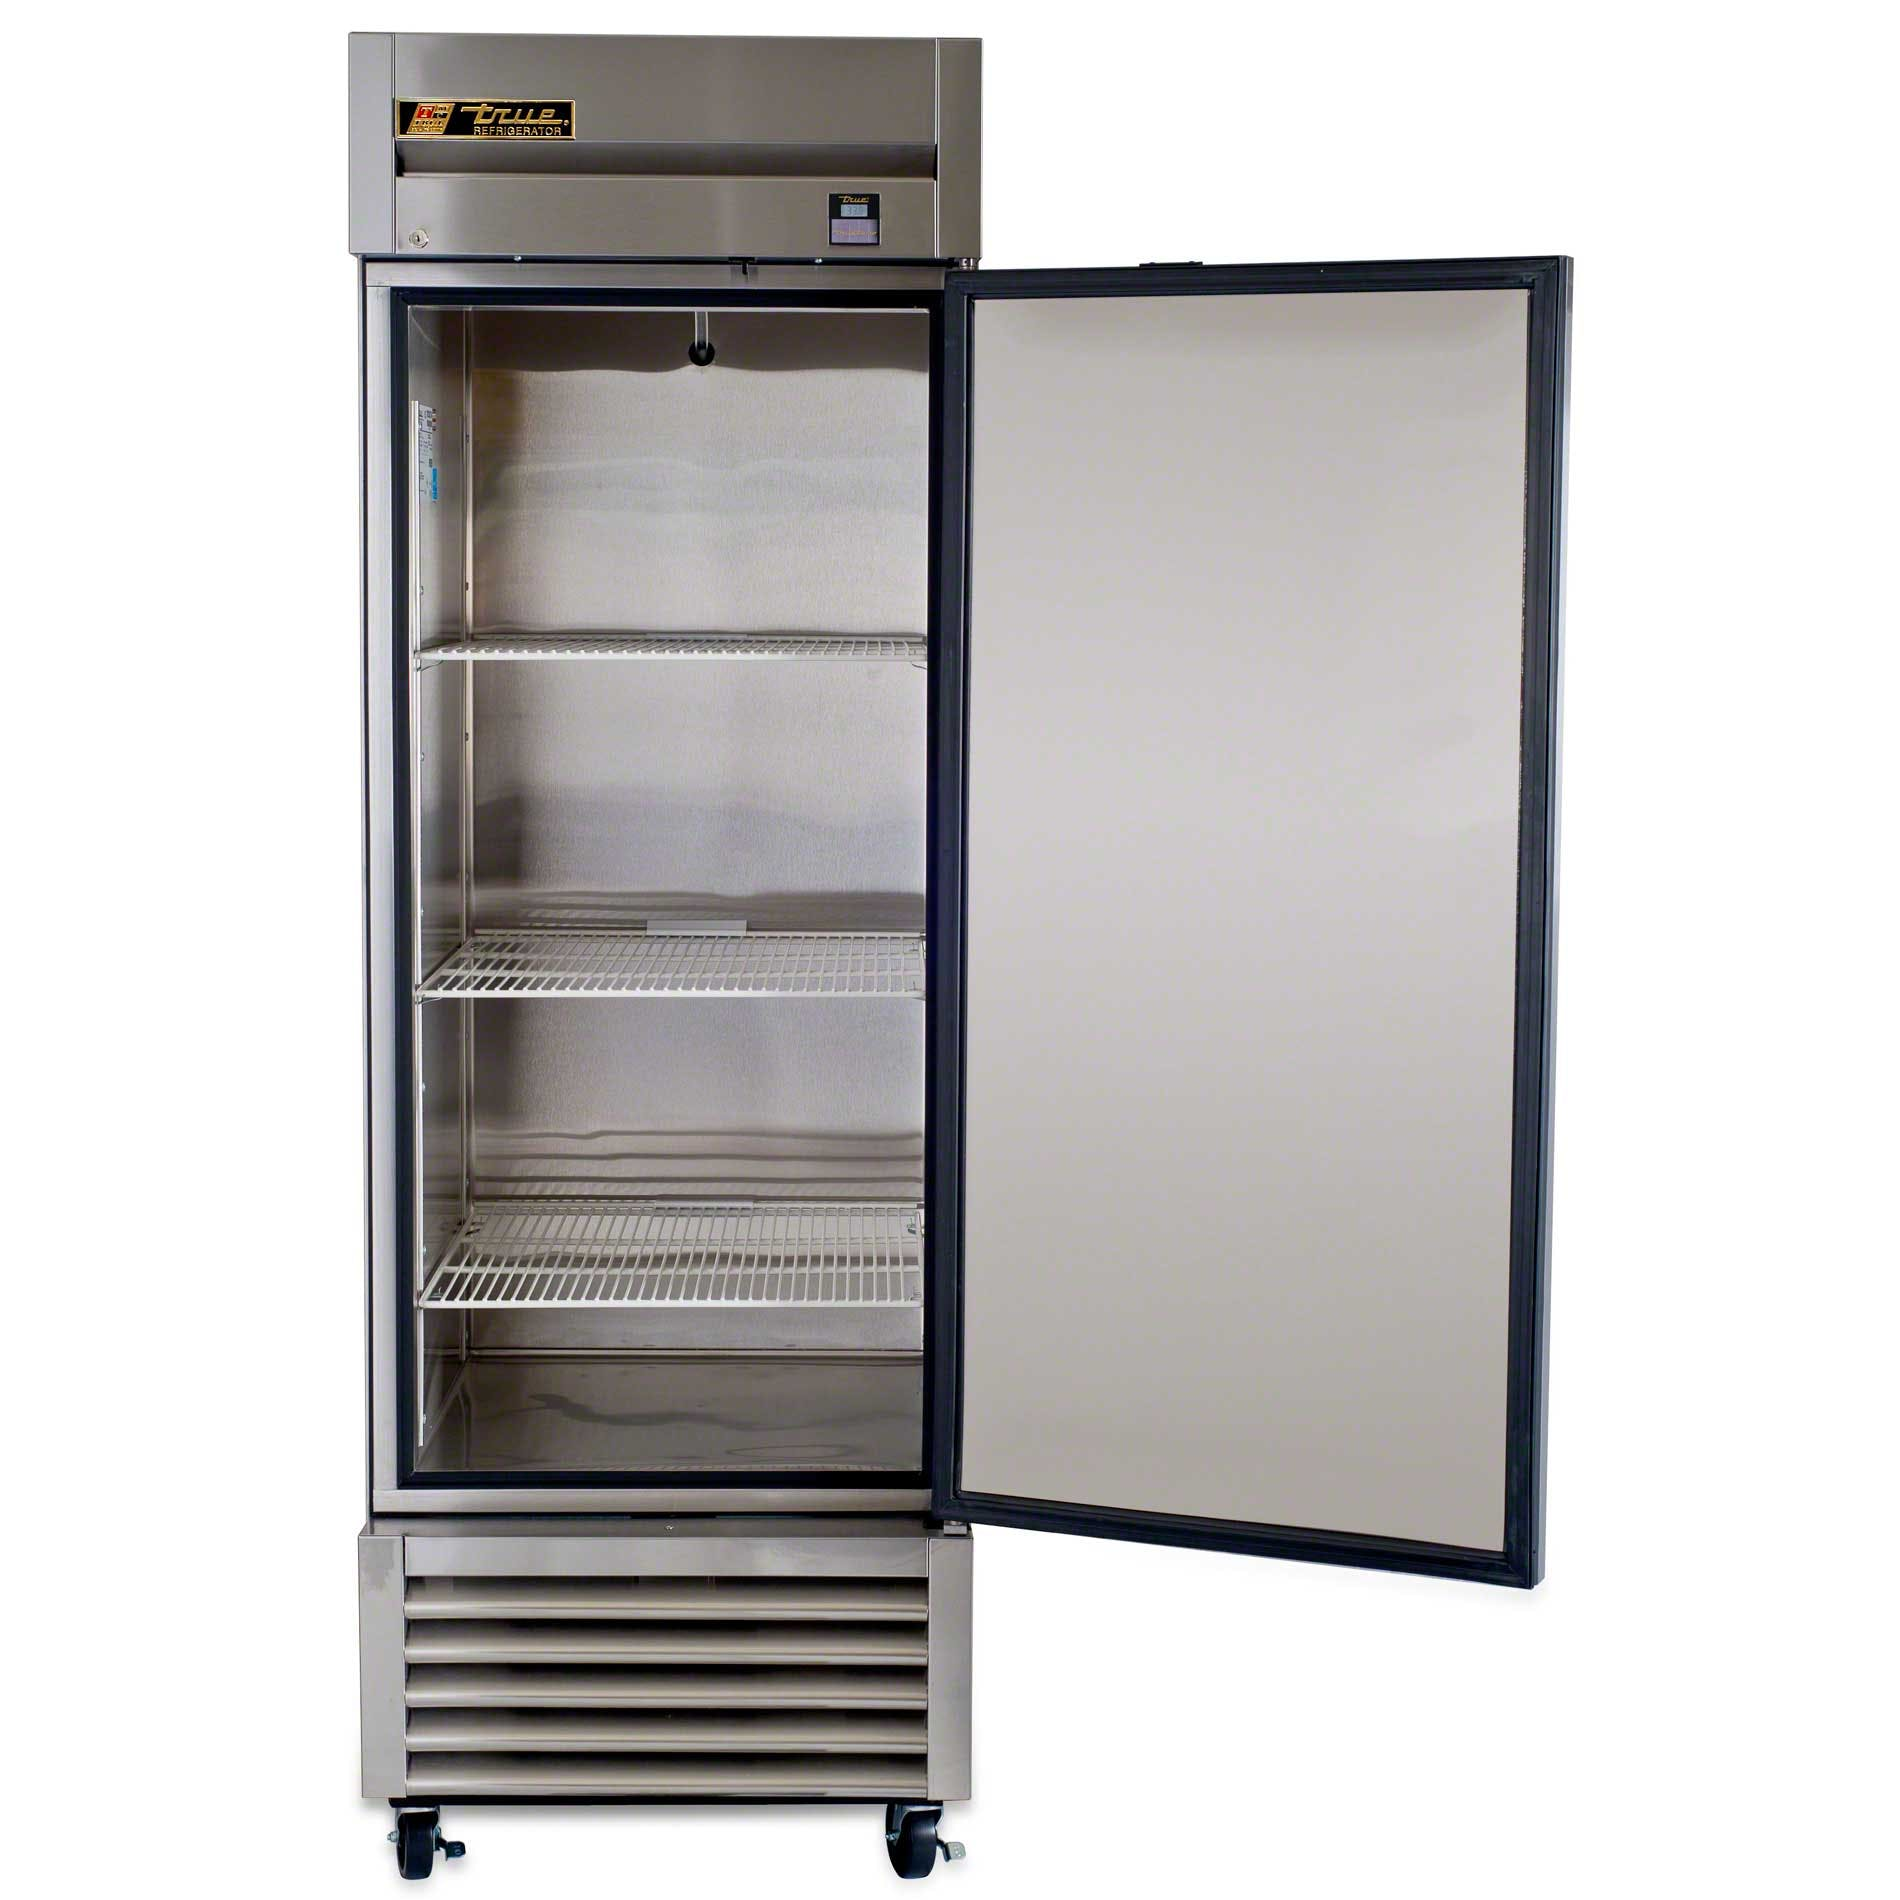 """True ( TS-23 ) - 27"""" Stainless Steel Solid Door Reach-In Refrigerator - 300 Series - sold by Food Service Warehouse"""